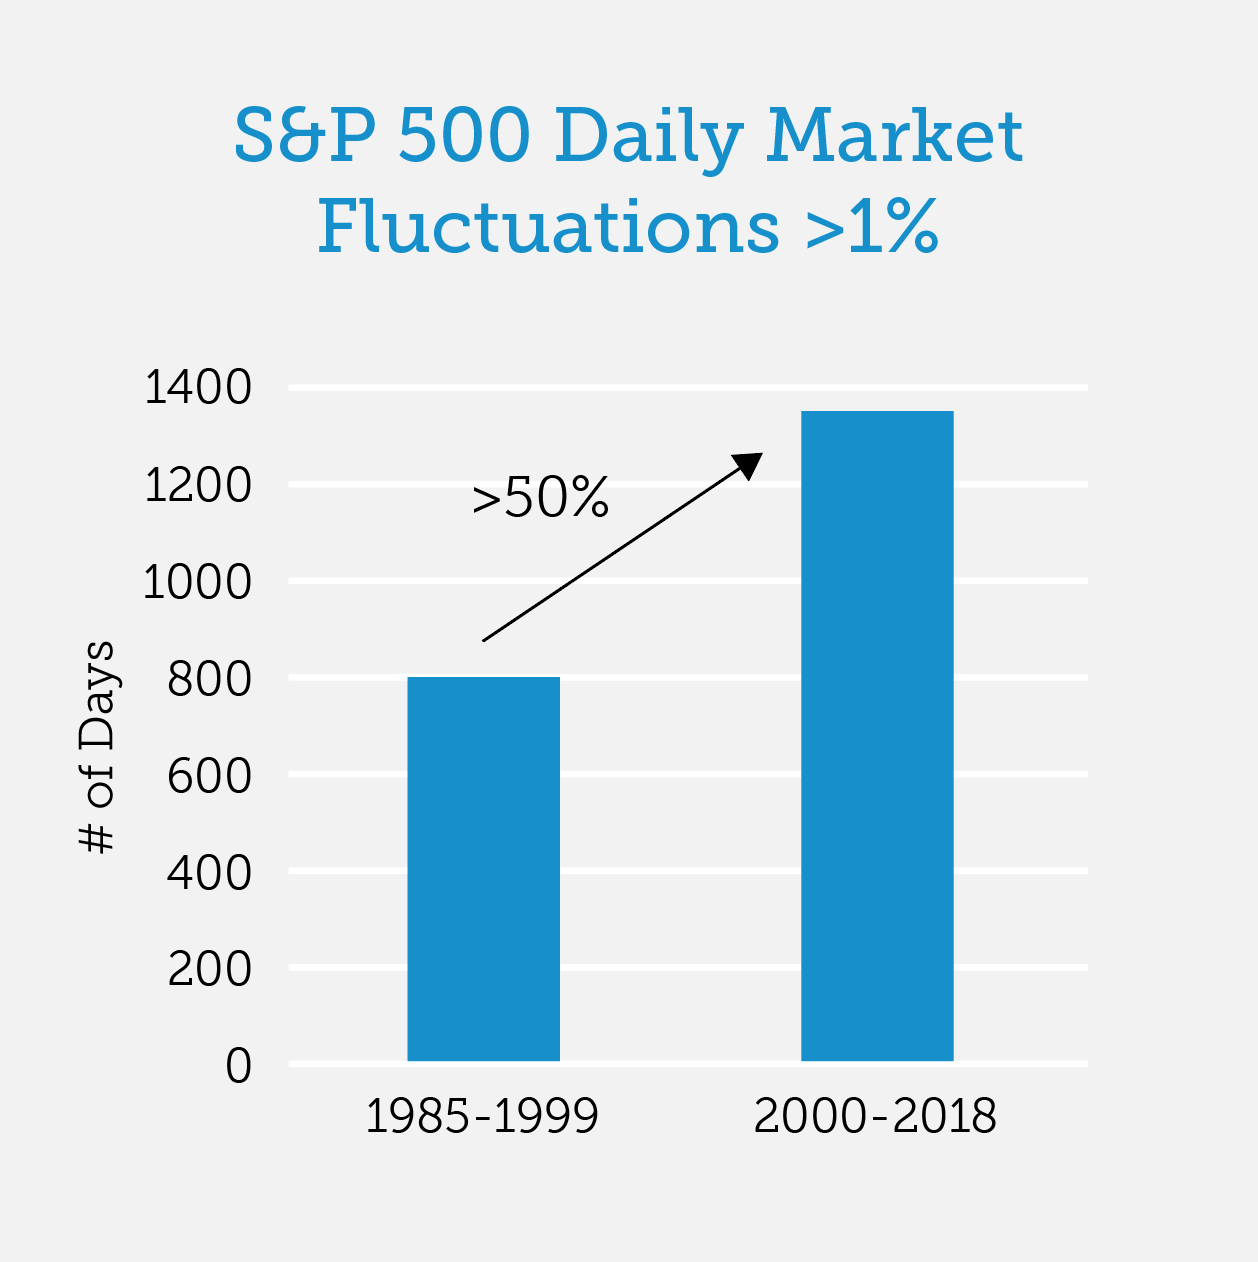 S&P Daily Market Fluctuations up to 2018